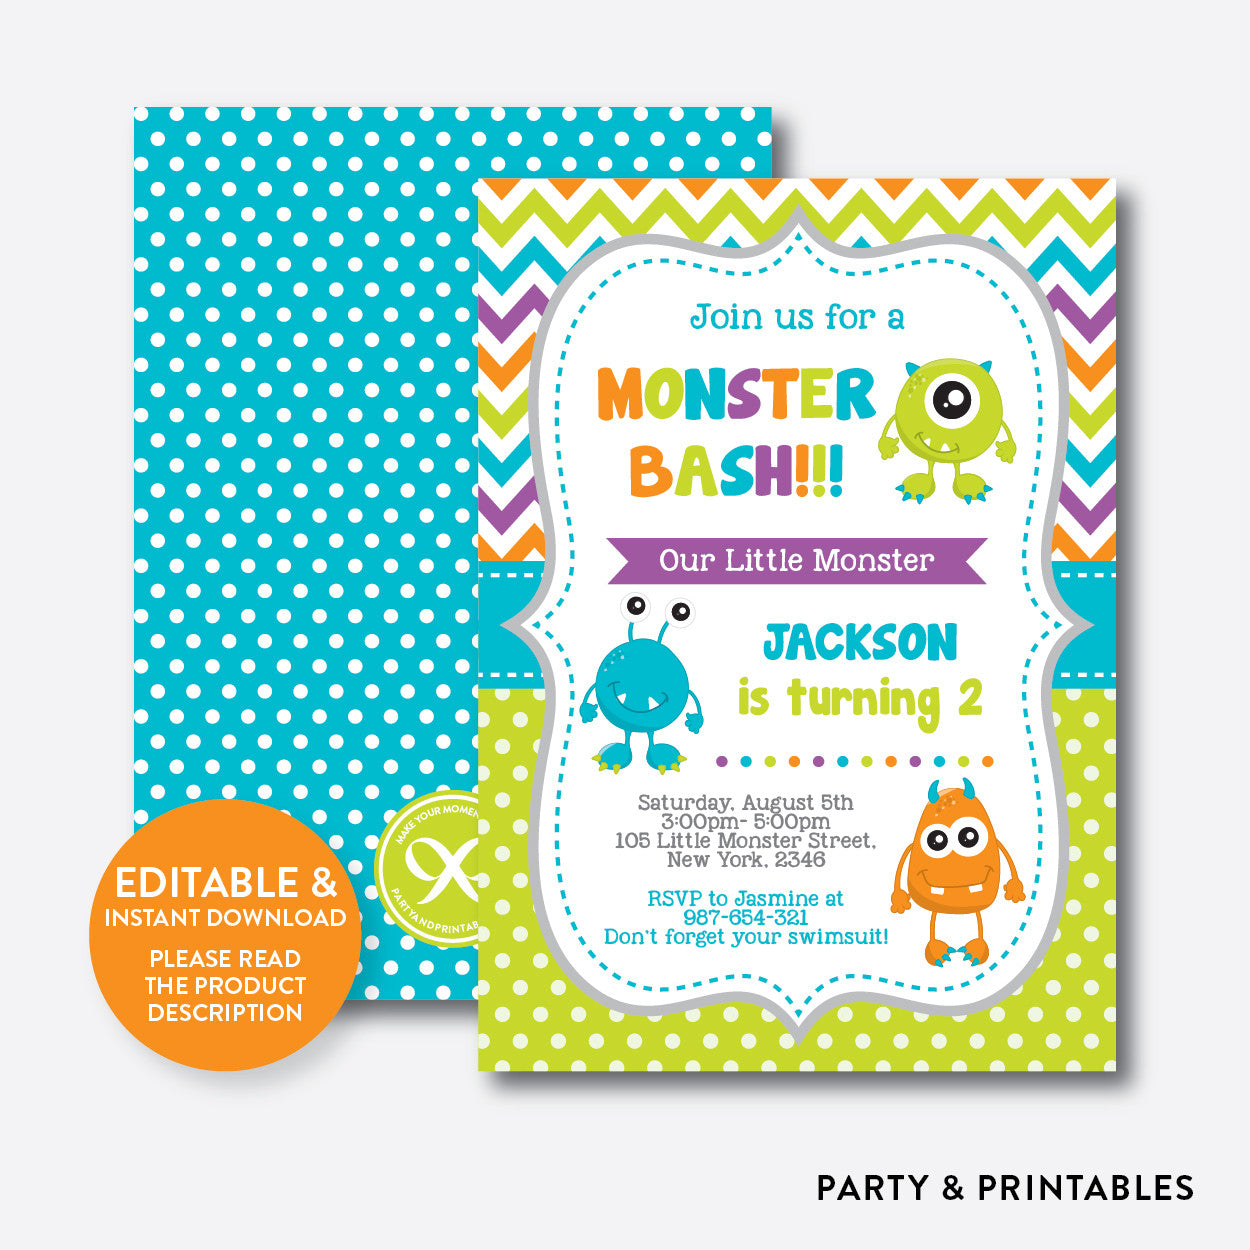 Monsters Kids Birthday Invitation / Editable / Instant Download (SKB.21), invitation - Party and Printables